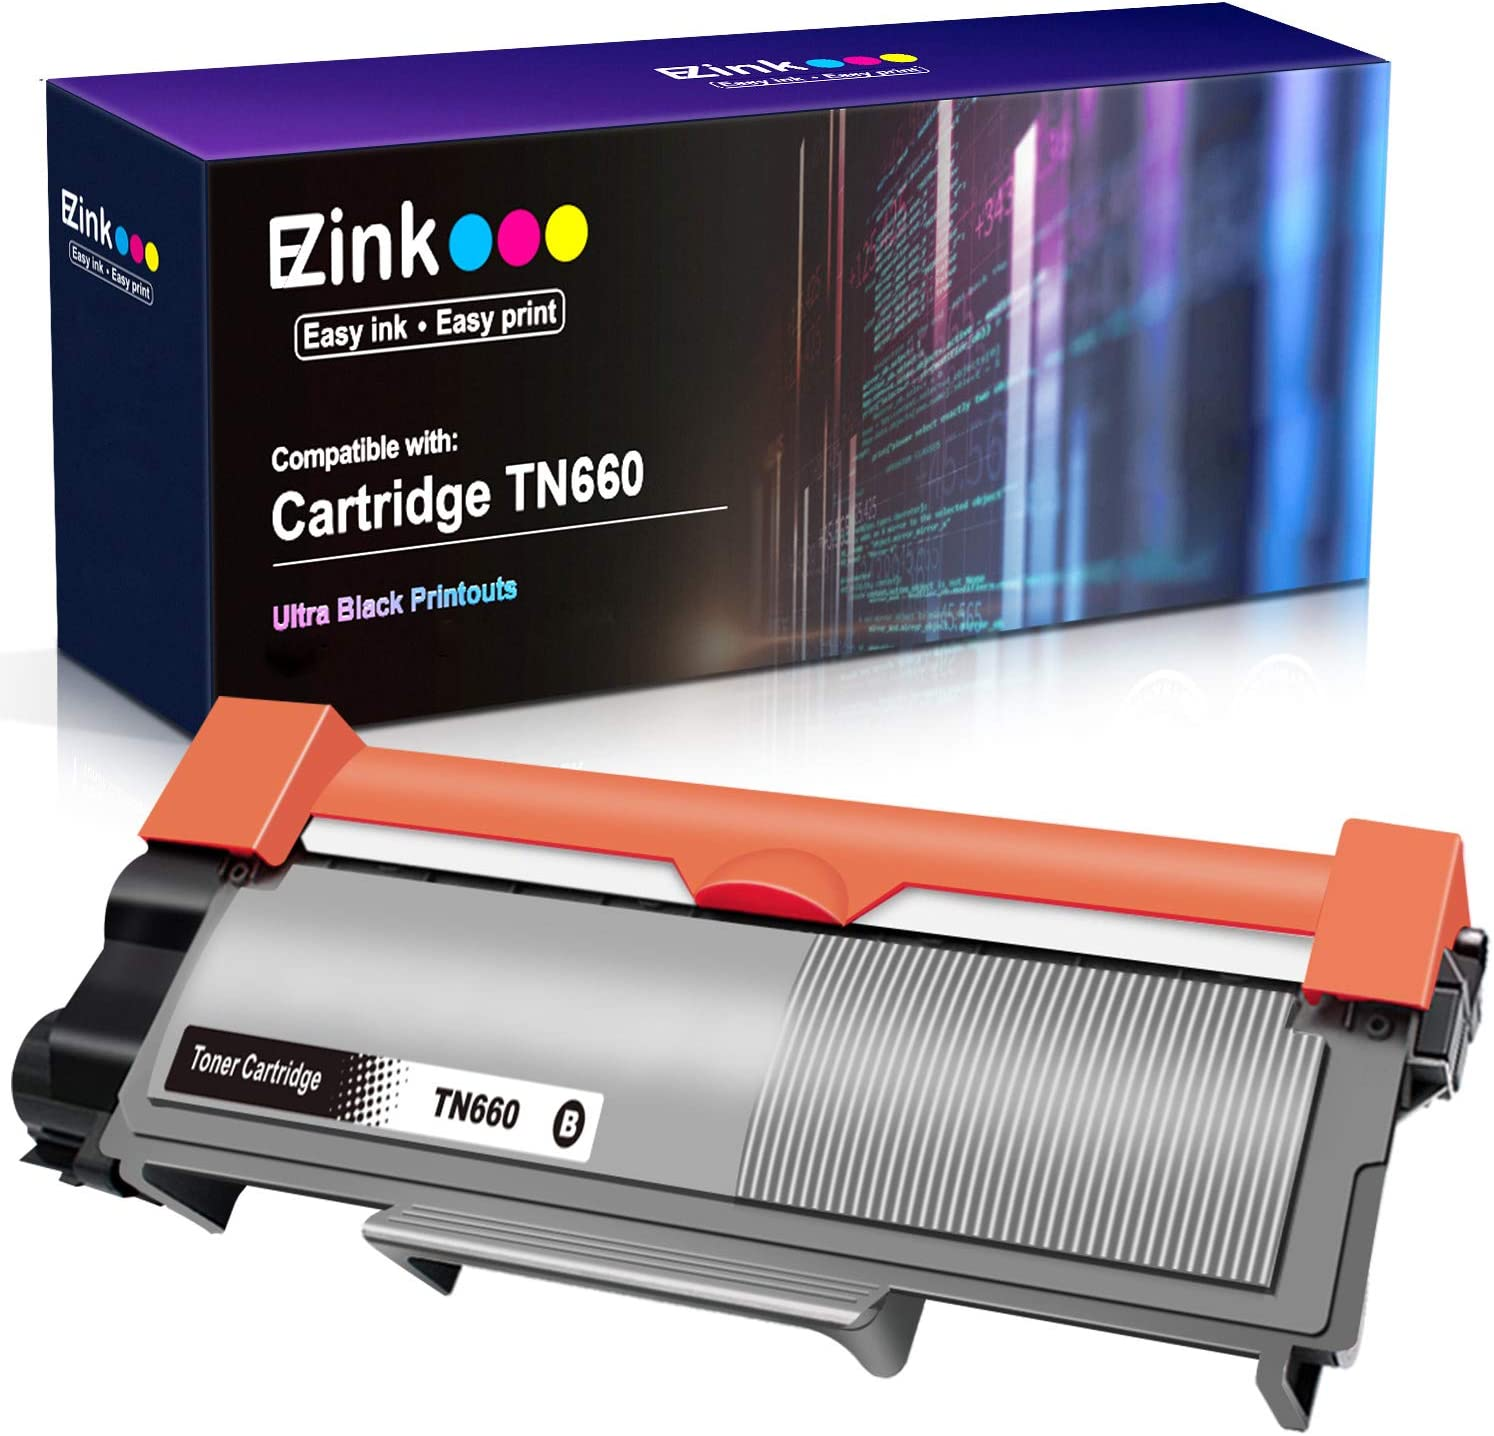 EZ Ink (TM) Compatible Toner Cartridge Replacement for Brother TN660 High Yield to use with HL-L2300D HL-L2320D HL-L2380DW HL-L2340DW MFC-L2700DW ...